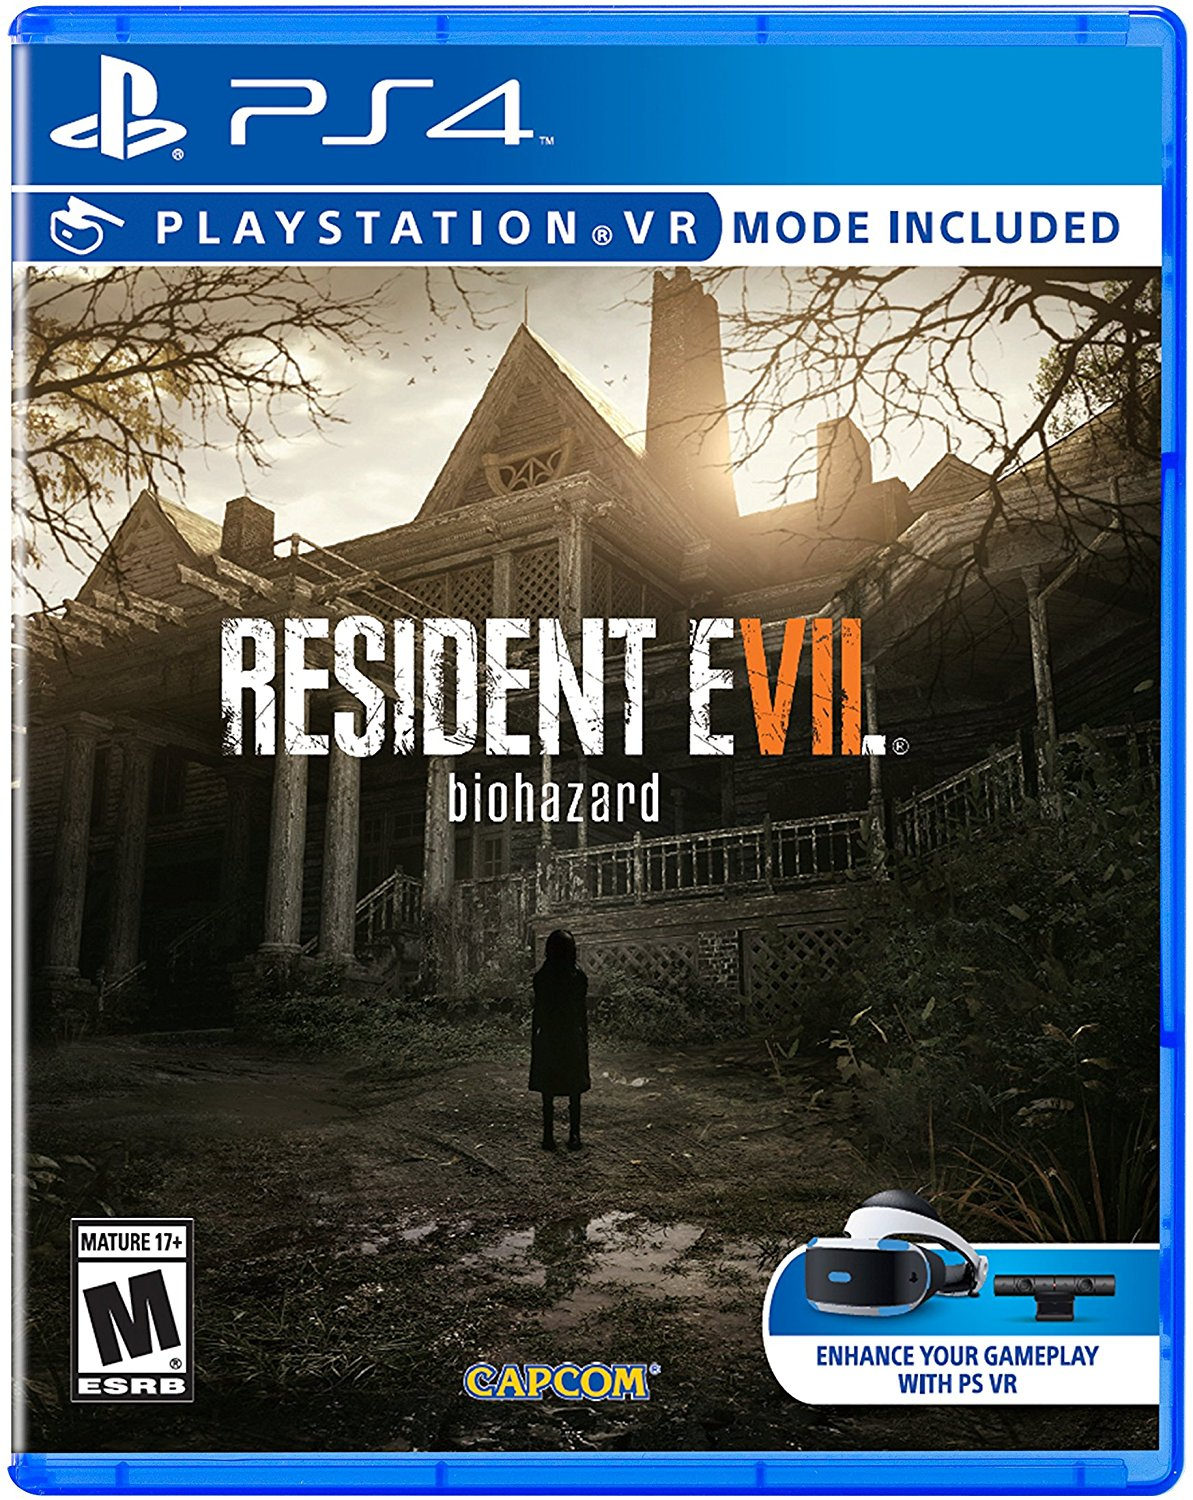 PS4 Resident Evil 7: Biohazard VR (PlayStation 4)